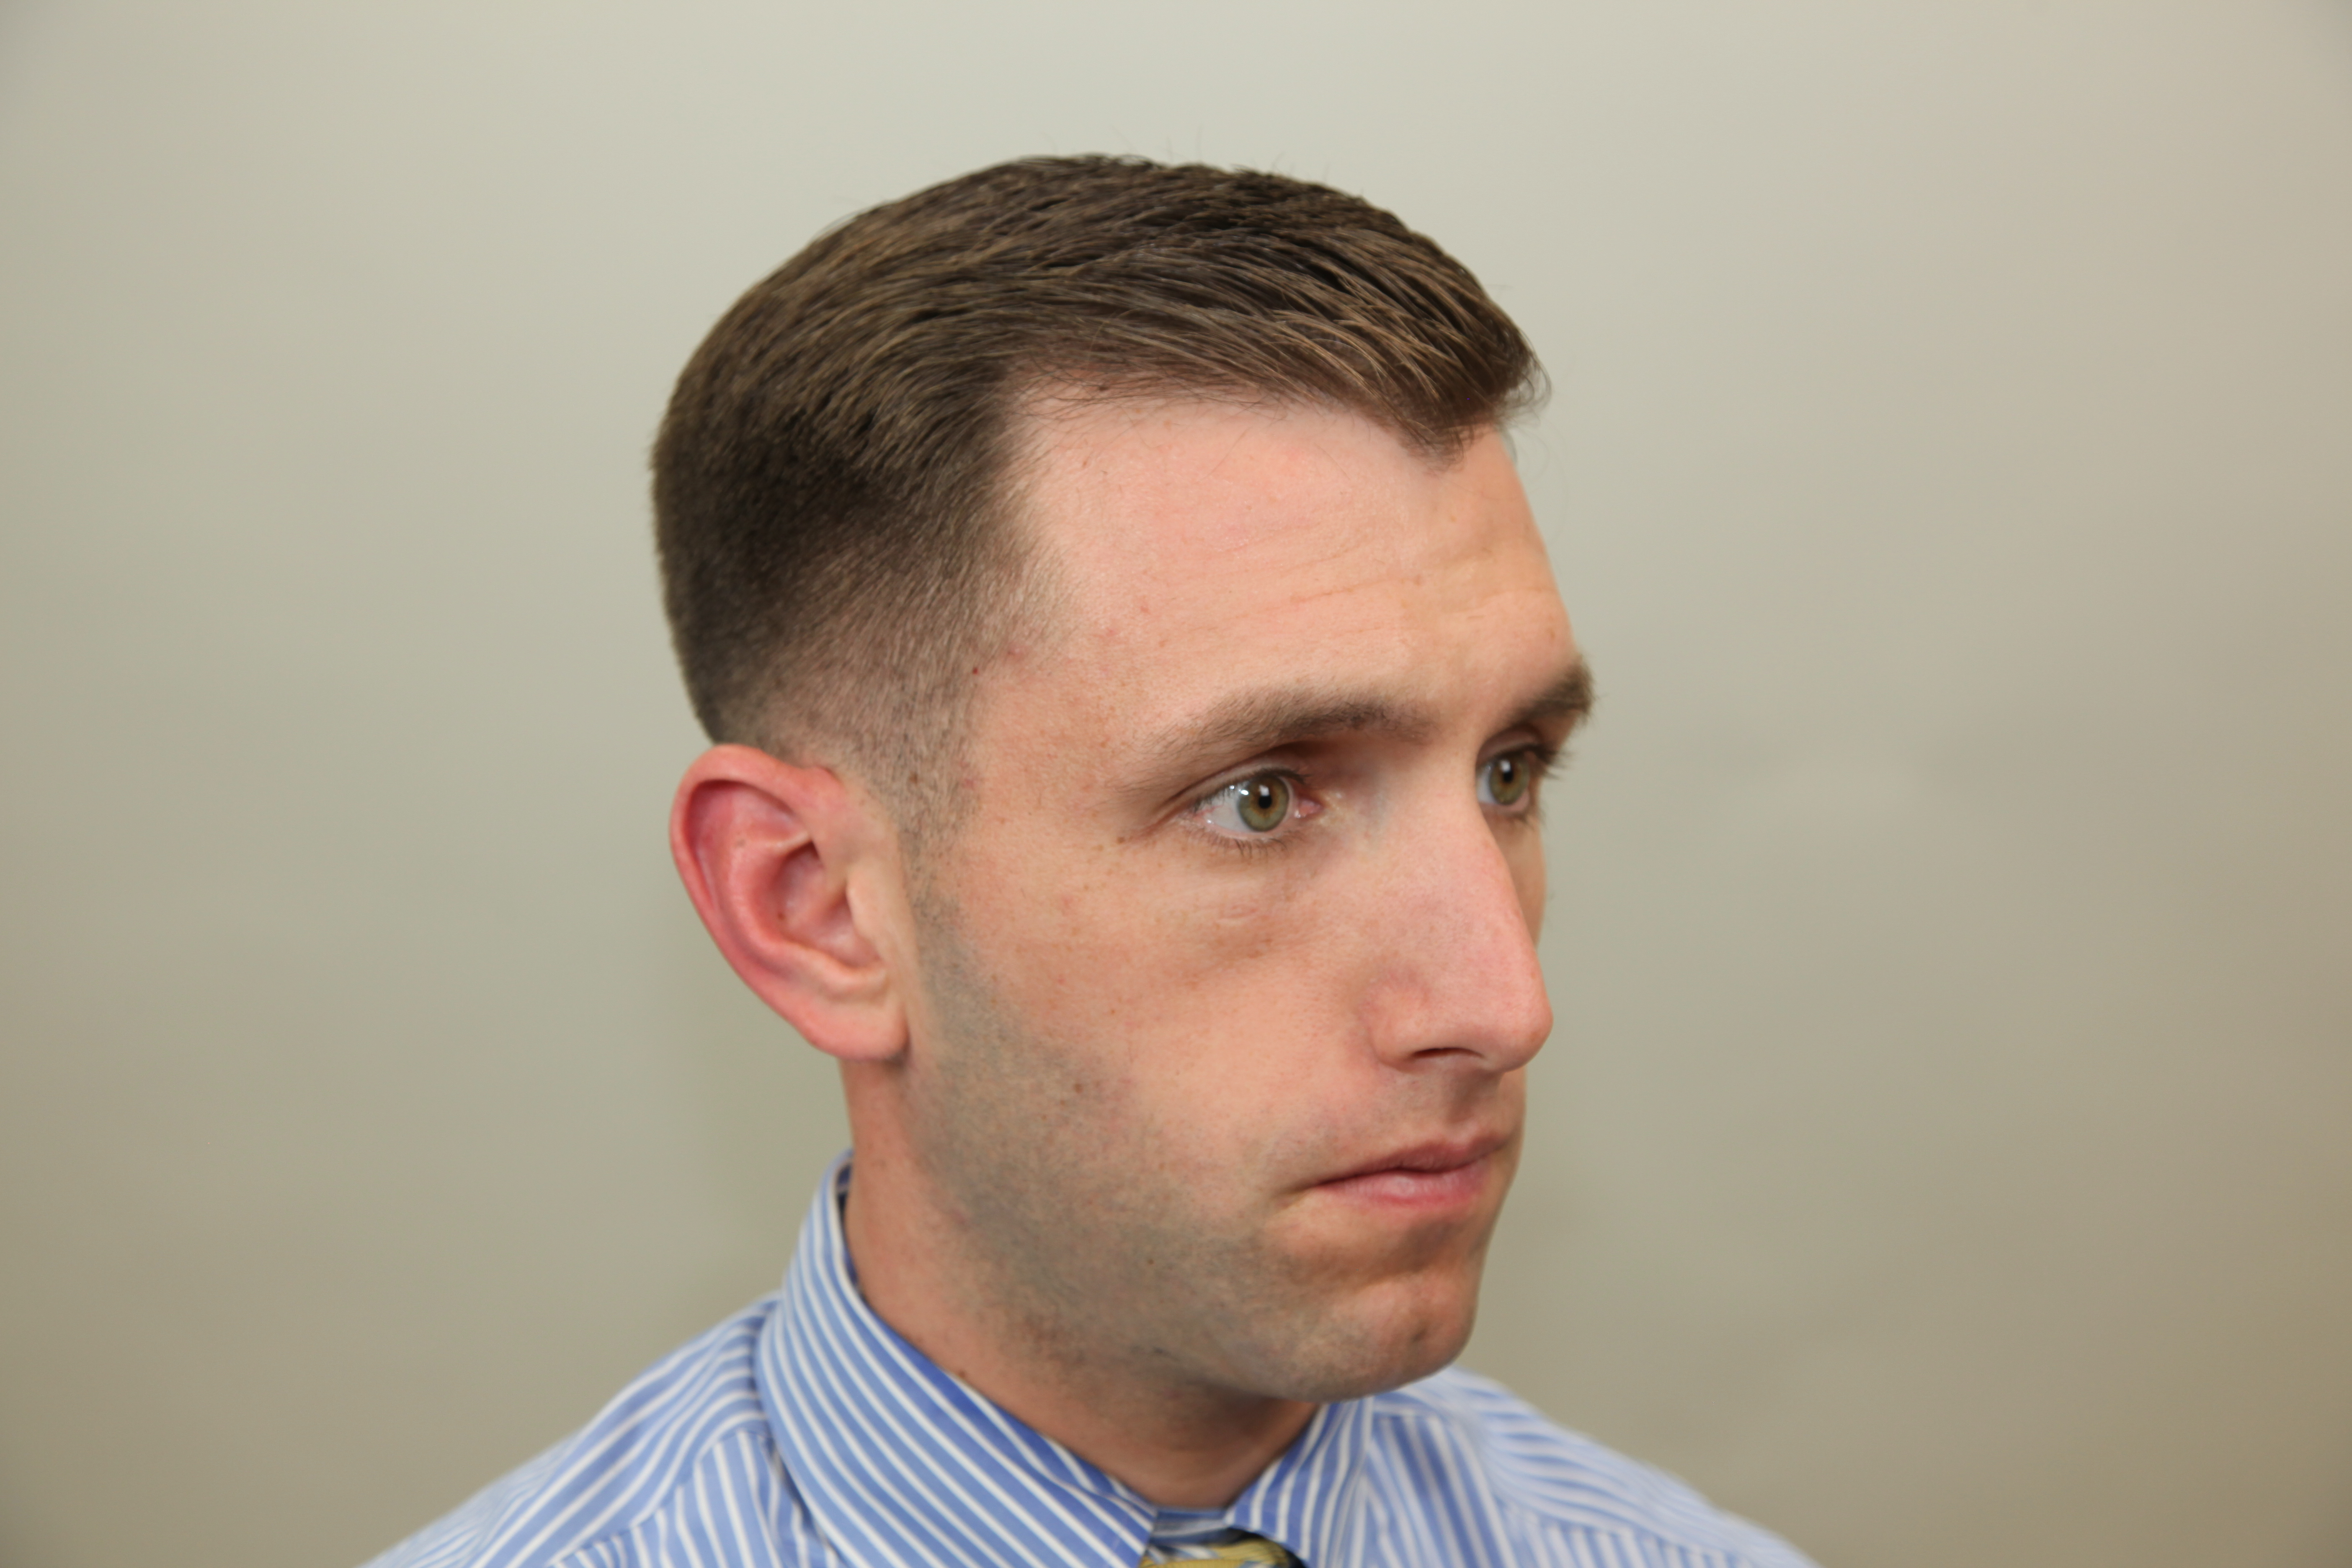 11 Low Fade Haircut Pictures Learn Haircuts